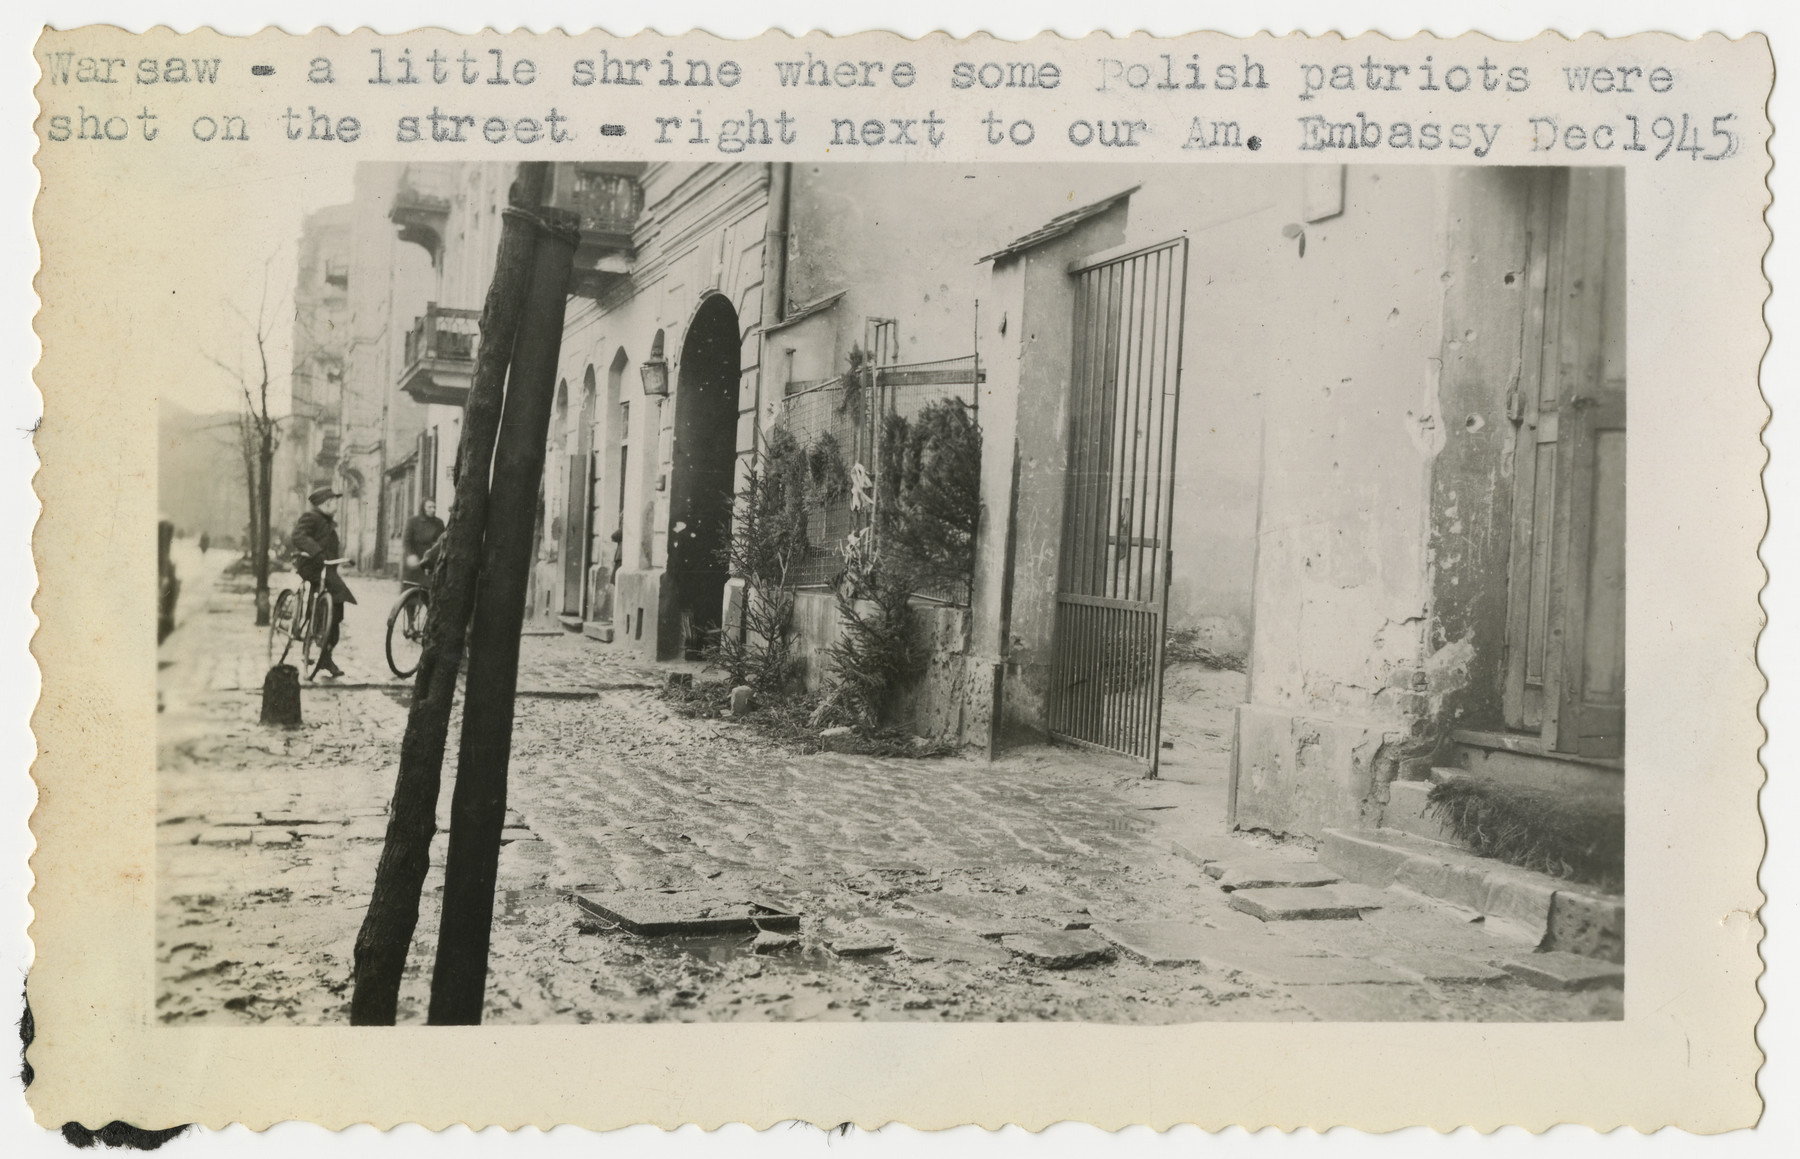 """Postwar street scene in Warsaw where wreaths hang by the site of the murder of Polish citizens.  The original caption reads """"A little shrine where some Polish patriots were shot on the street -- right  next to our American Embassy."""""""